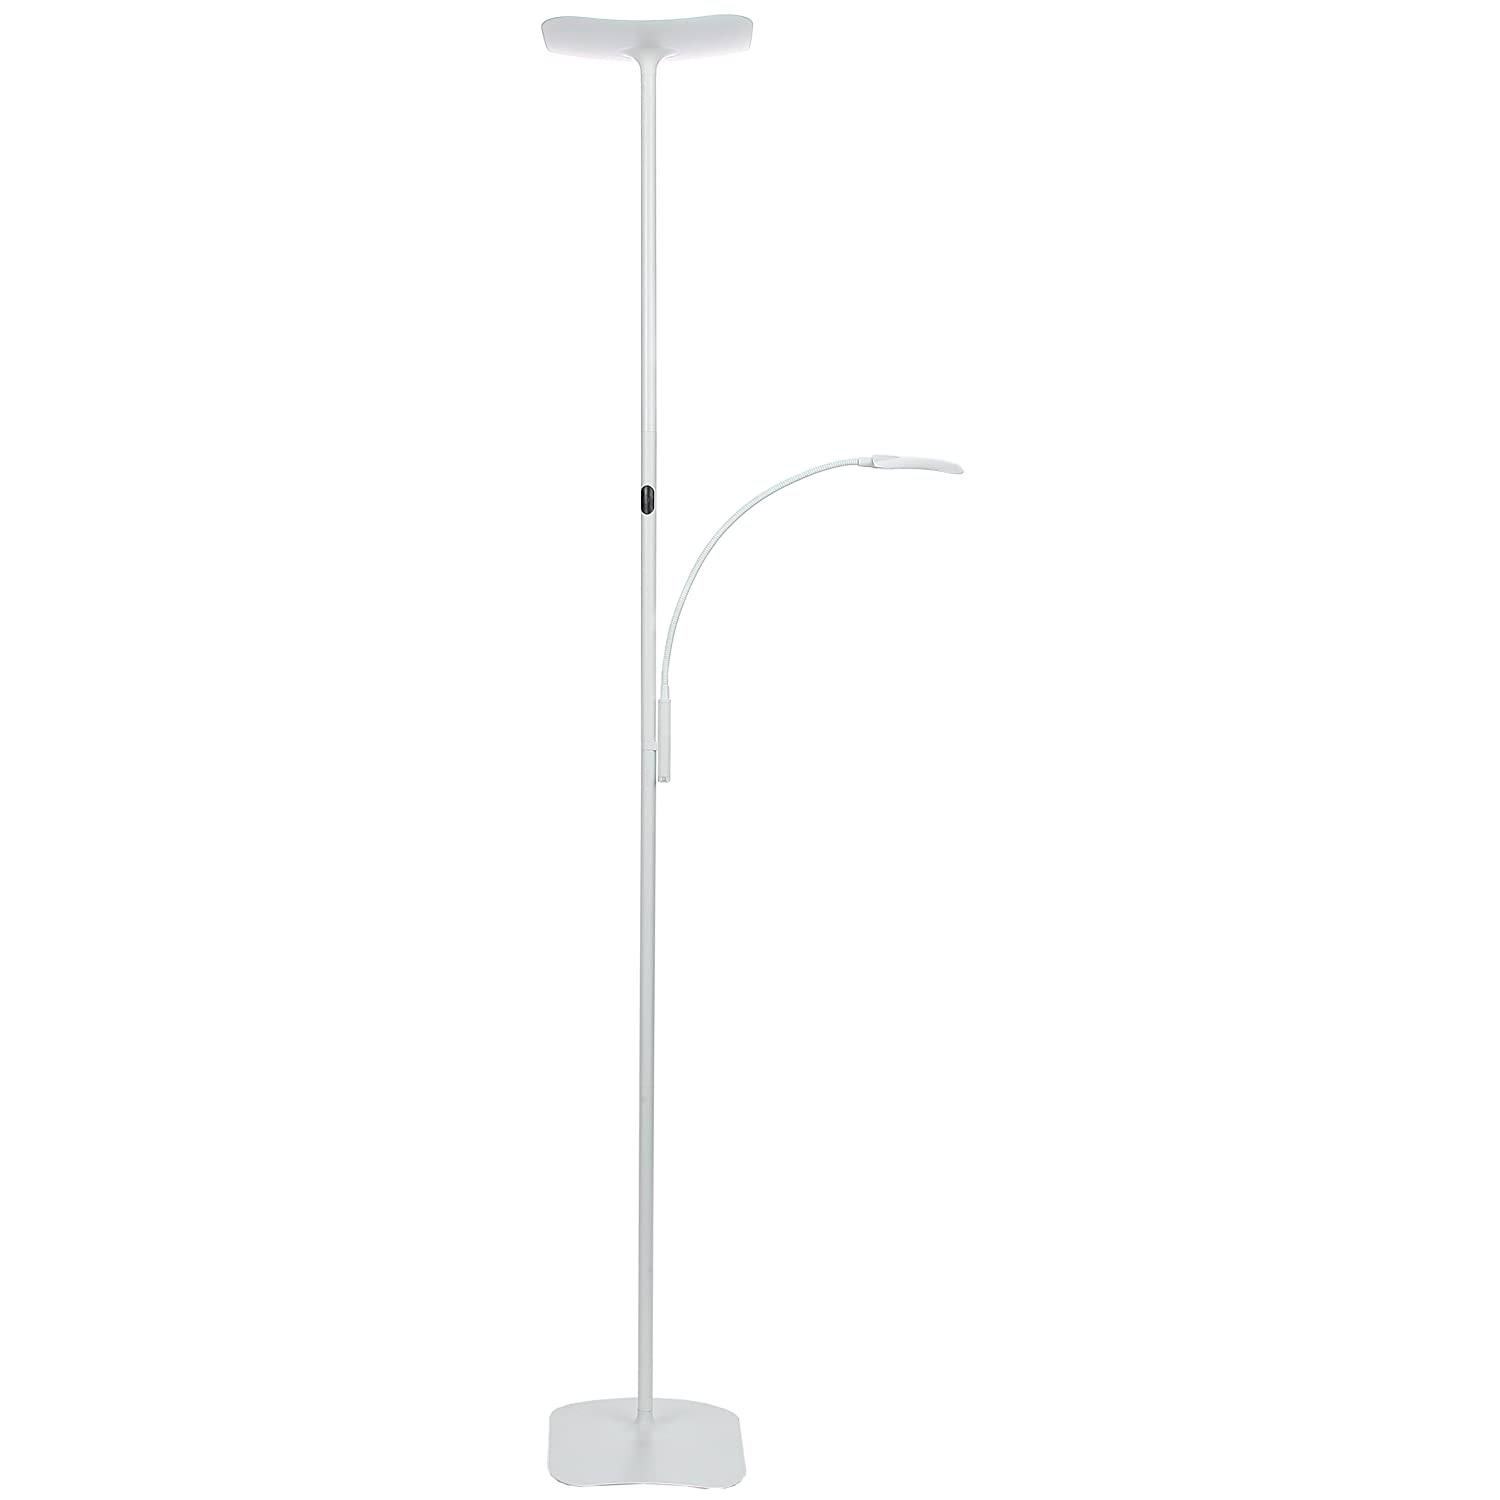 Brightech SKY Plus- LED Torchiere Floor Lamp – 33 W Energy Saving, Dimmable, Adjustable, Reading Lamp– Modern Tall Standing Pole Uplight for Light Living Room, Dorm, Bedroom or Office –Platinum Silver sky plus silver